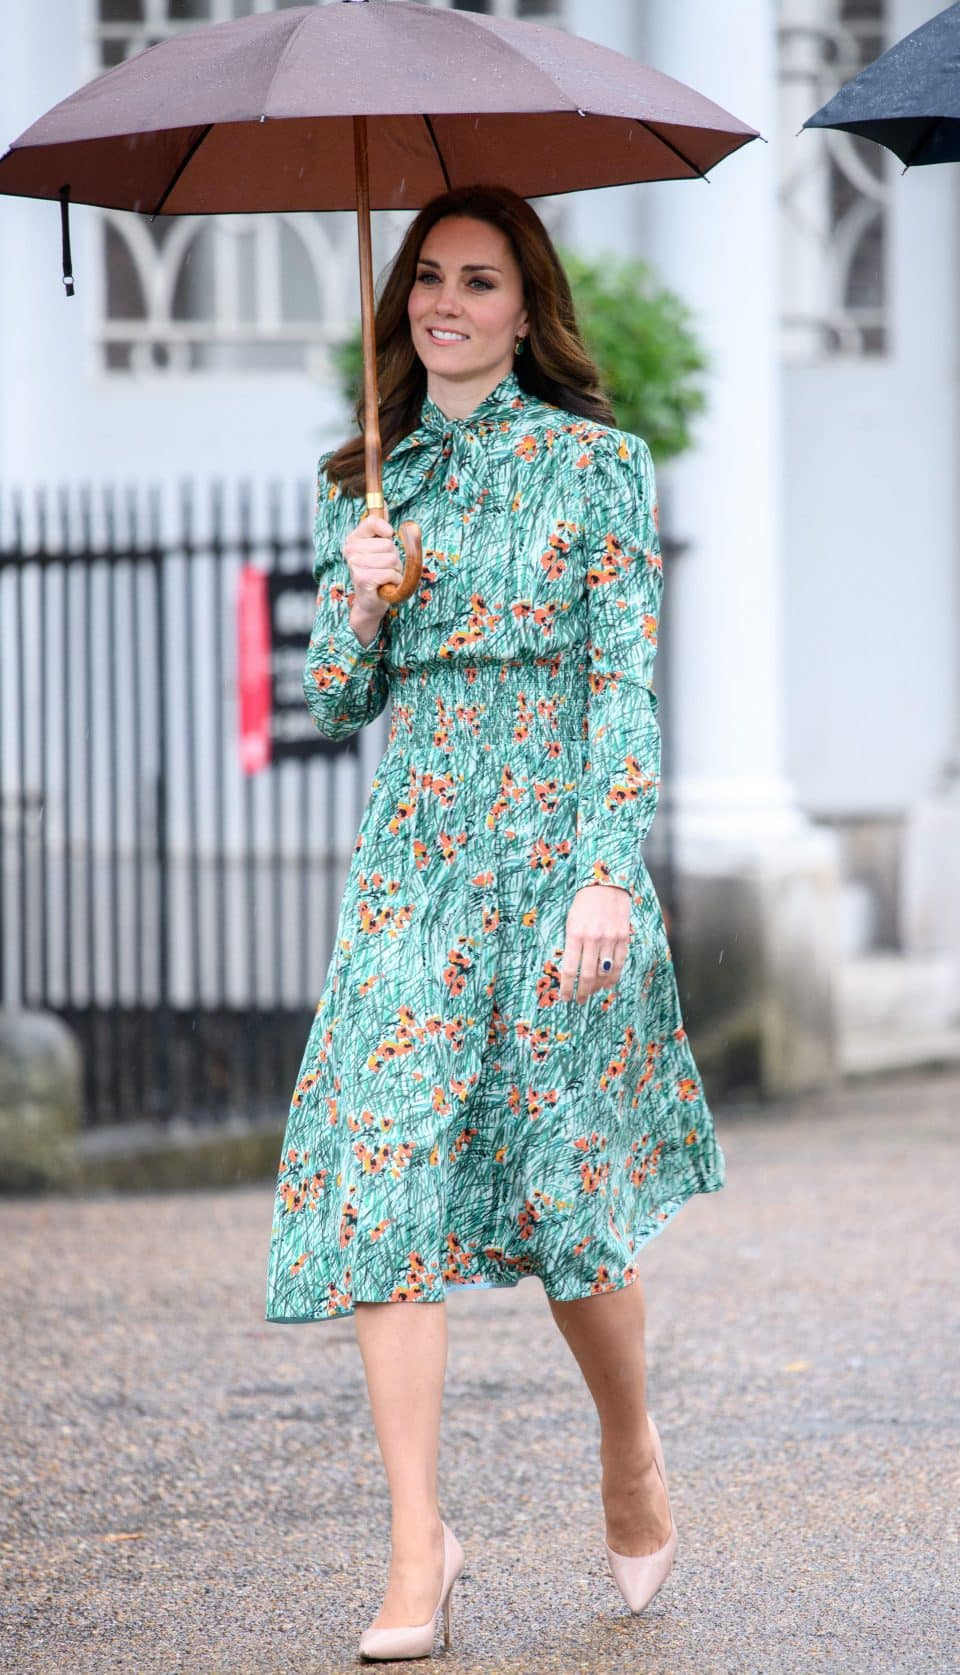 Drab, boring, frumpy: Kate Middleton is the new style icon of ...